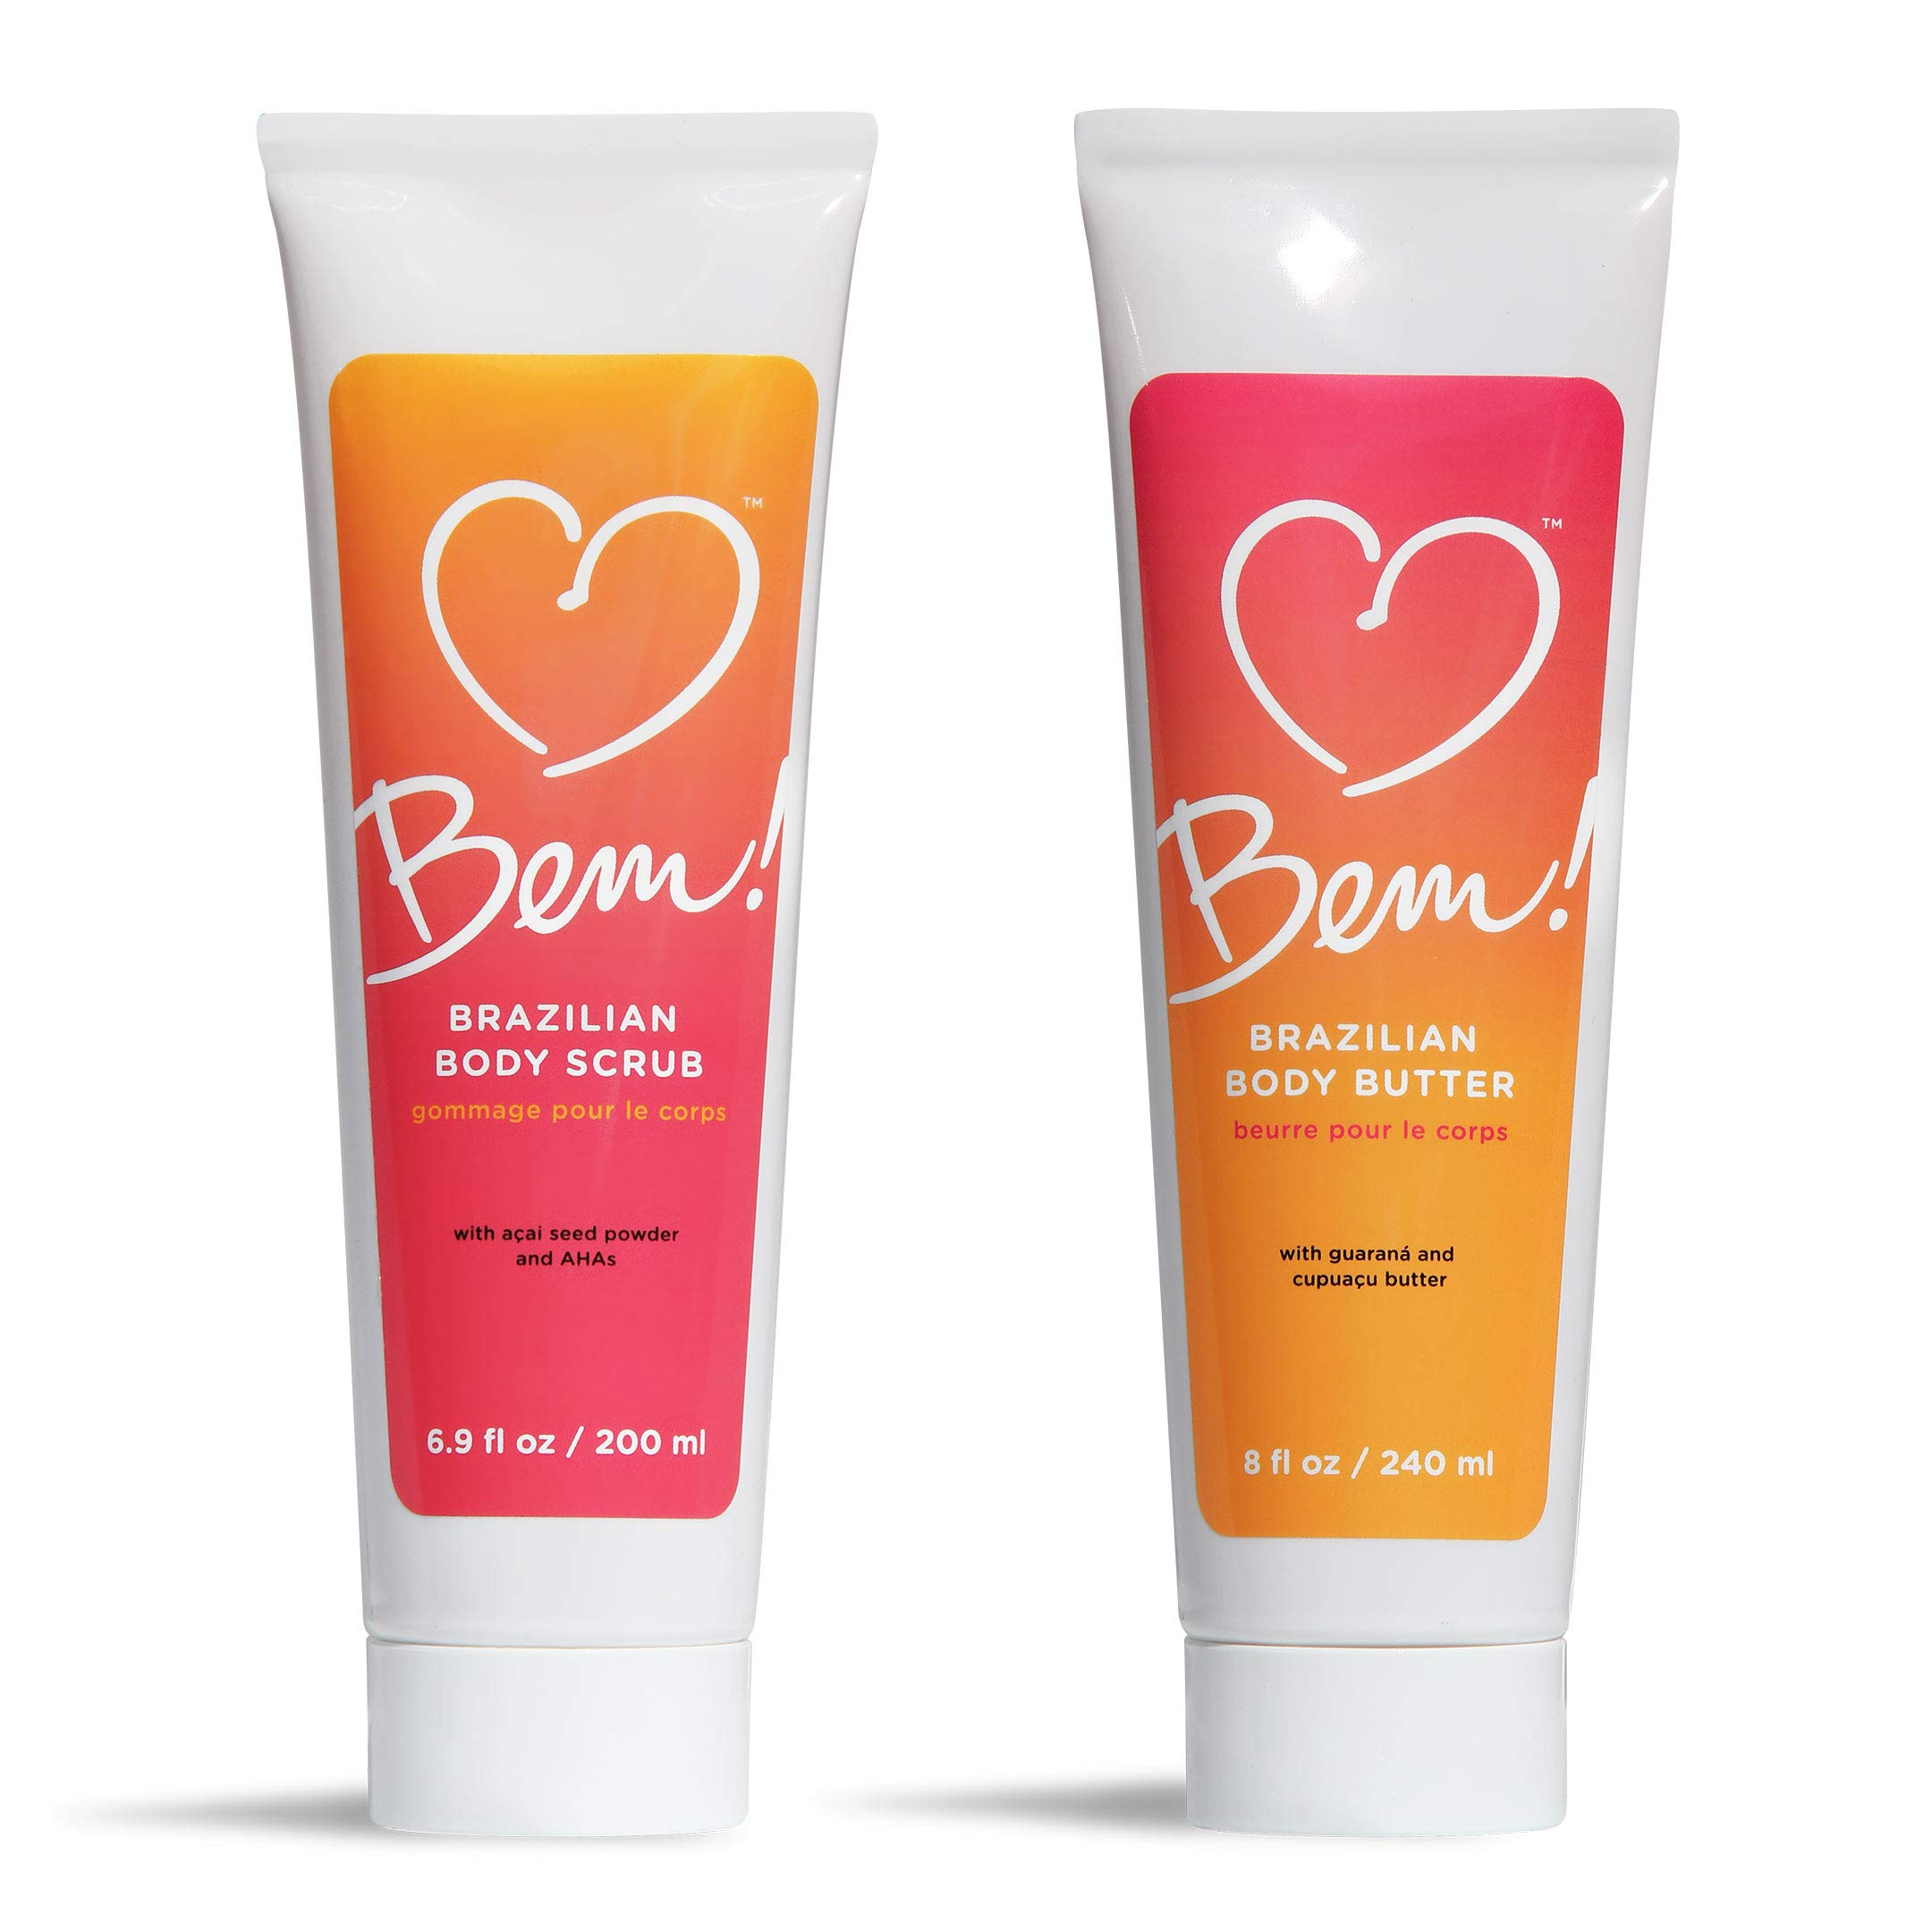 Bem! Brazilian Body Scrub & Body Butter Natural Gift Set for Dry Skin with Coconut and Shea Butter by BEM BEAUTY